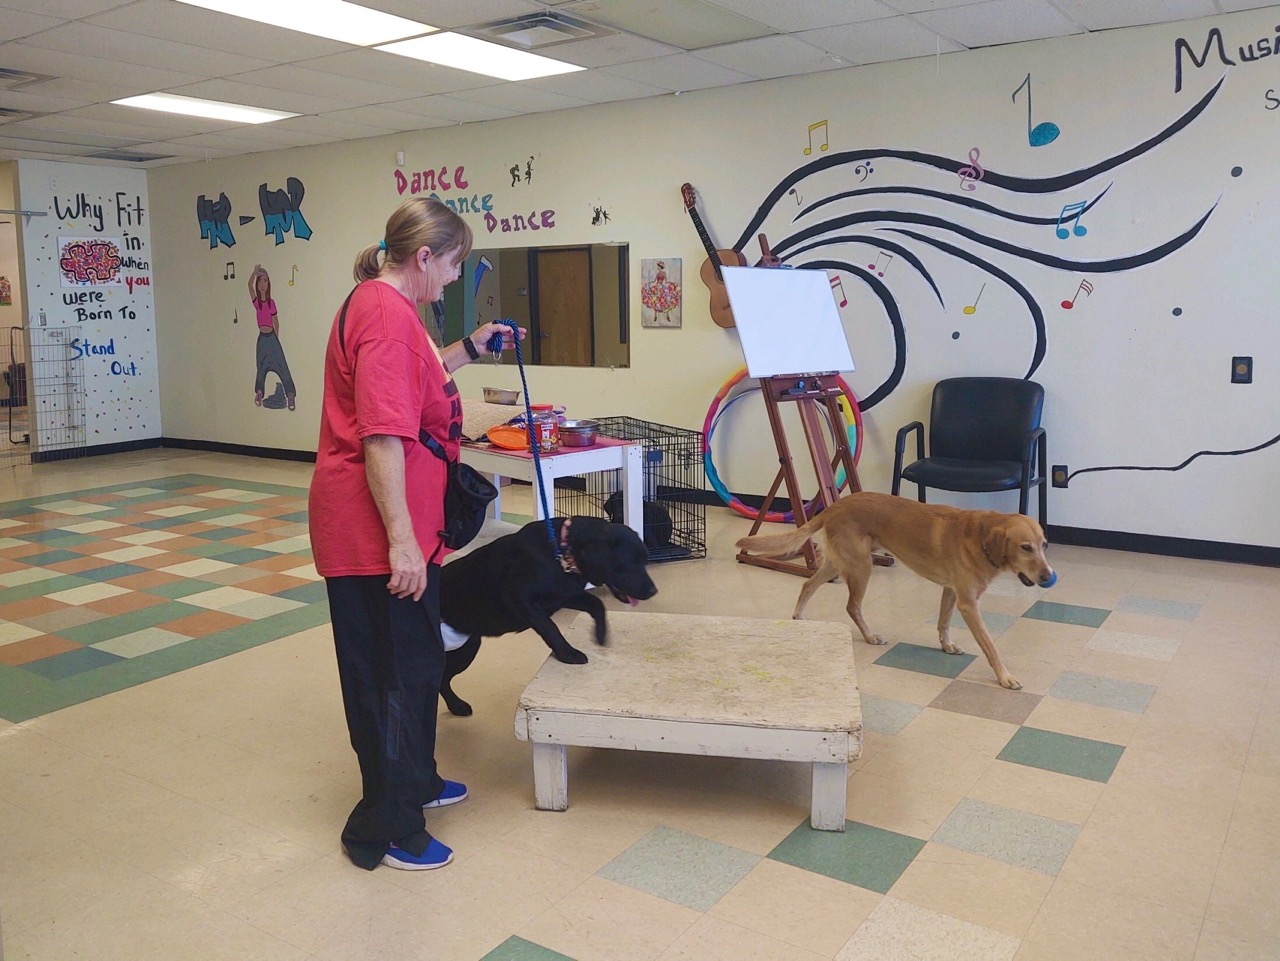 Our trainer, Dani, trains dogs at the Arts and Animals building. Dog training is one of the day services we offer over Zoom.